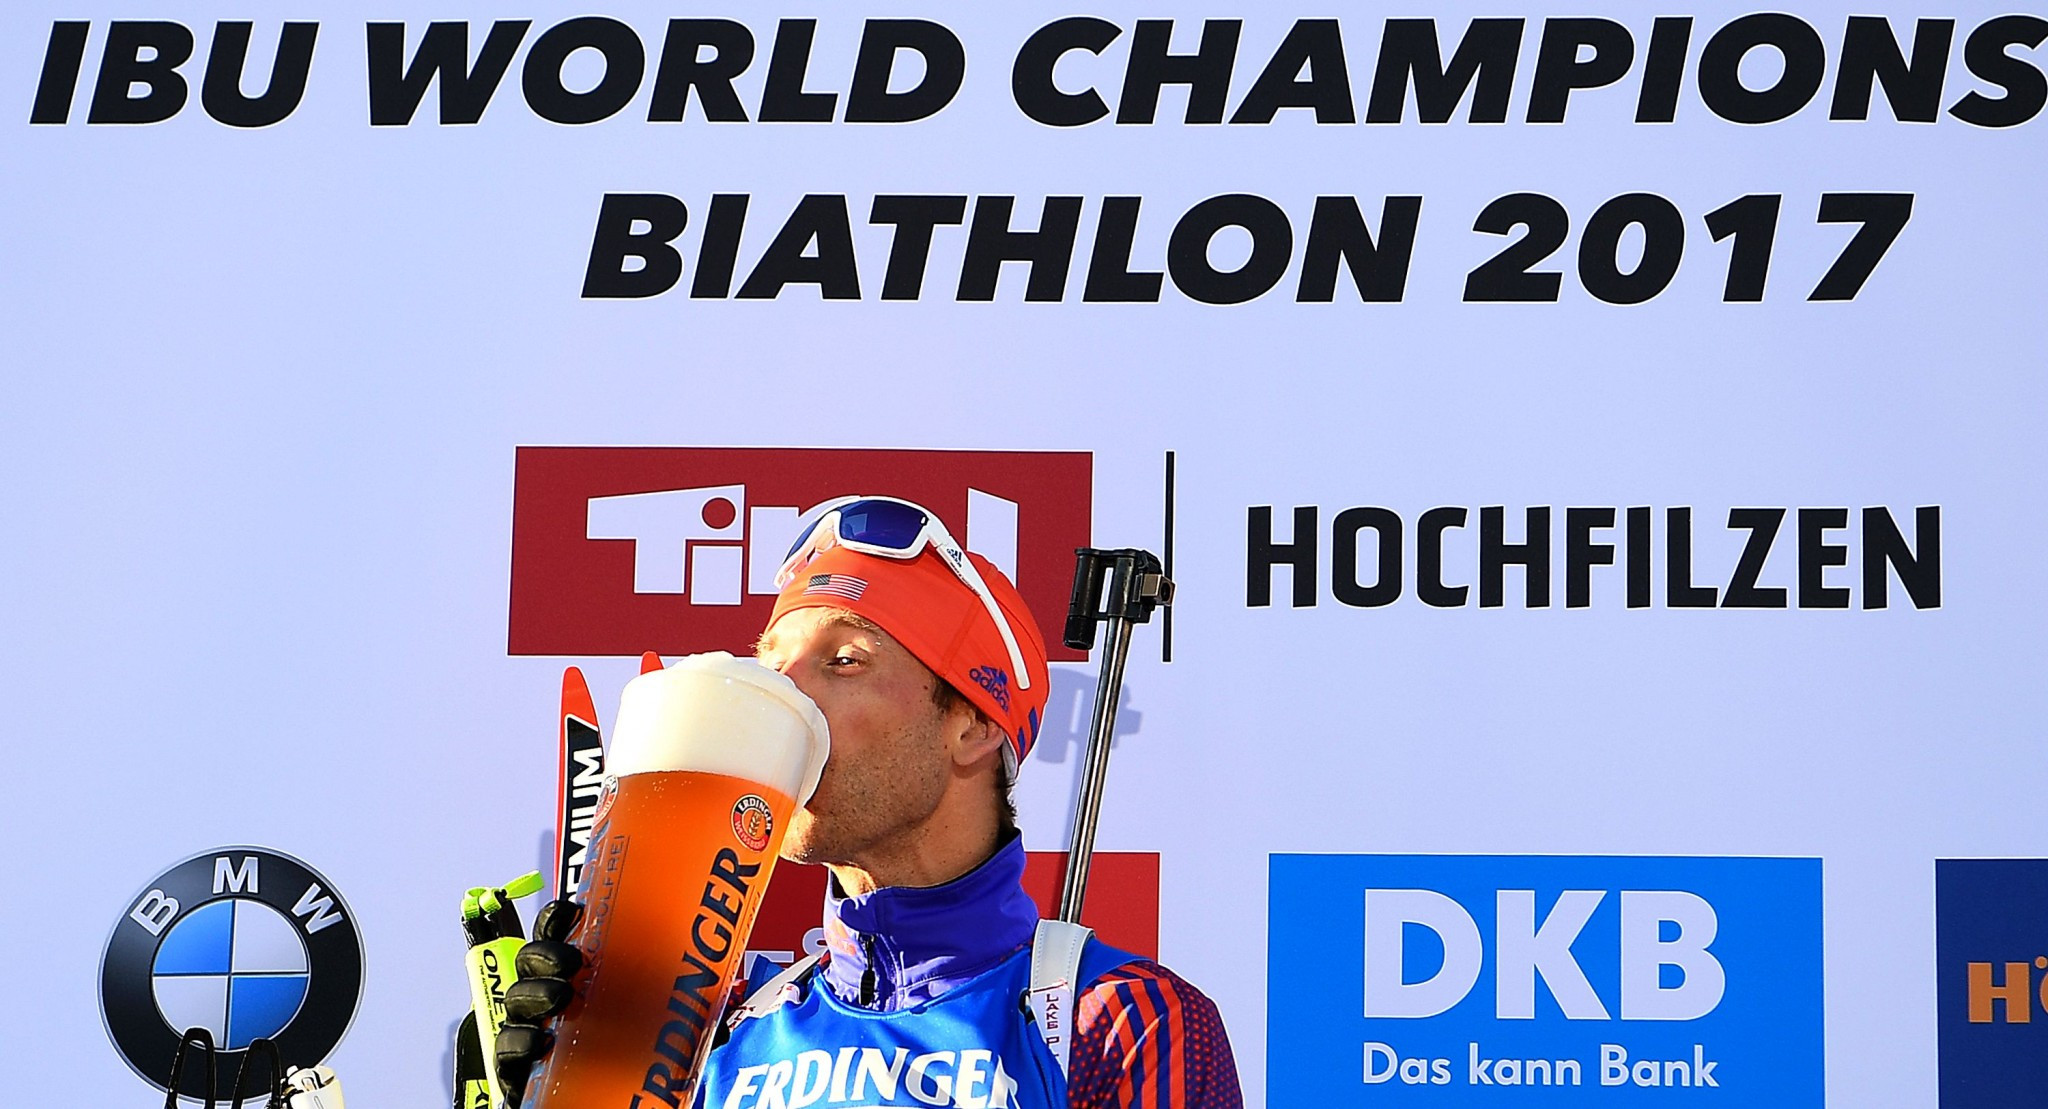 Lowell Bailey made history as the first American winner of IBU World Championship gold ©Getty Images